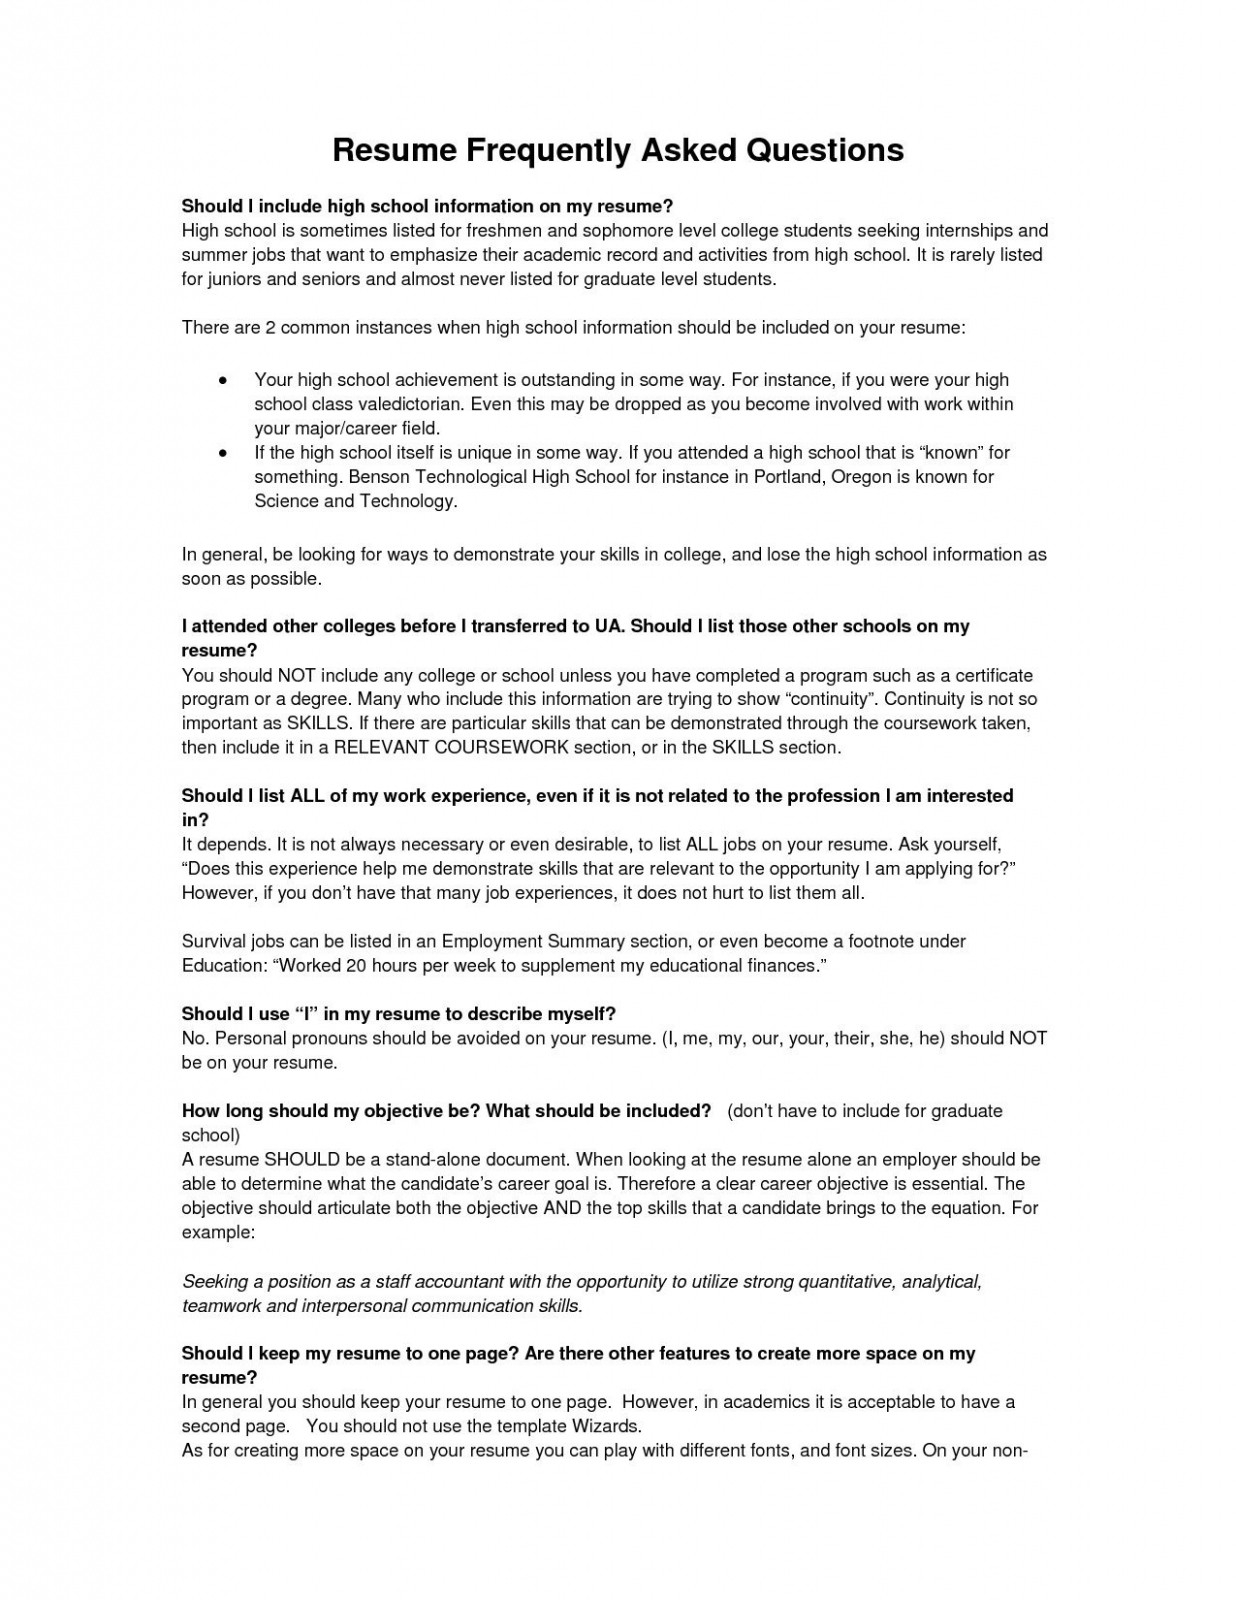 Describe Yourself On A Resume - Greatest Resume or Cv for Graduate School Meant for Fresher Job Cv